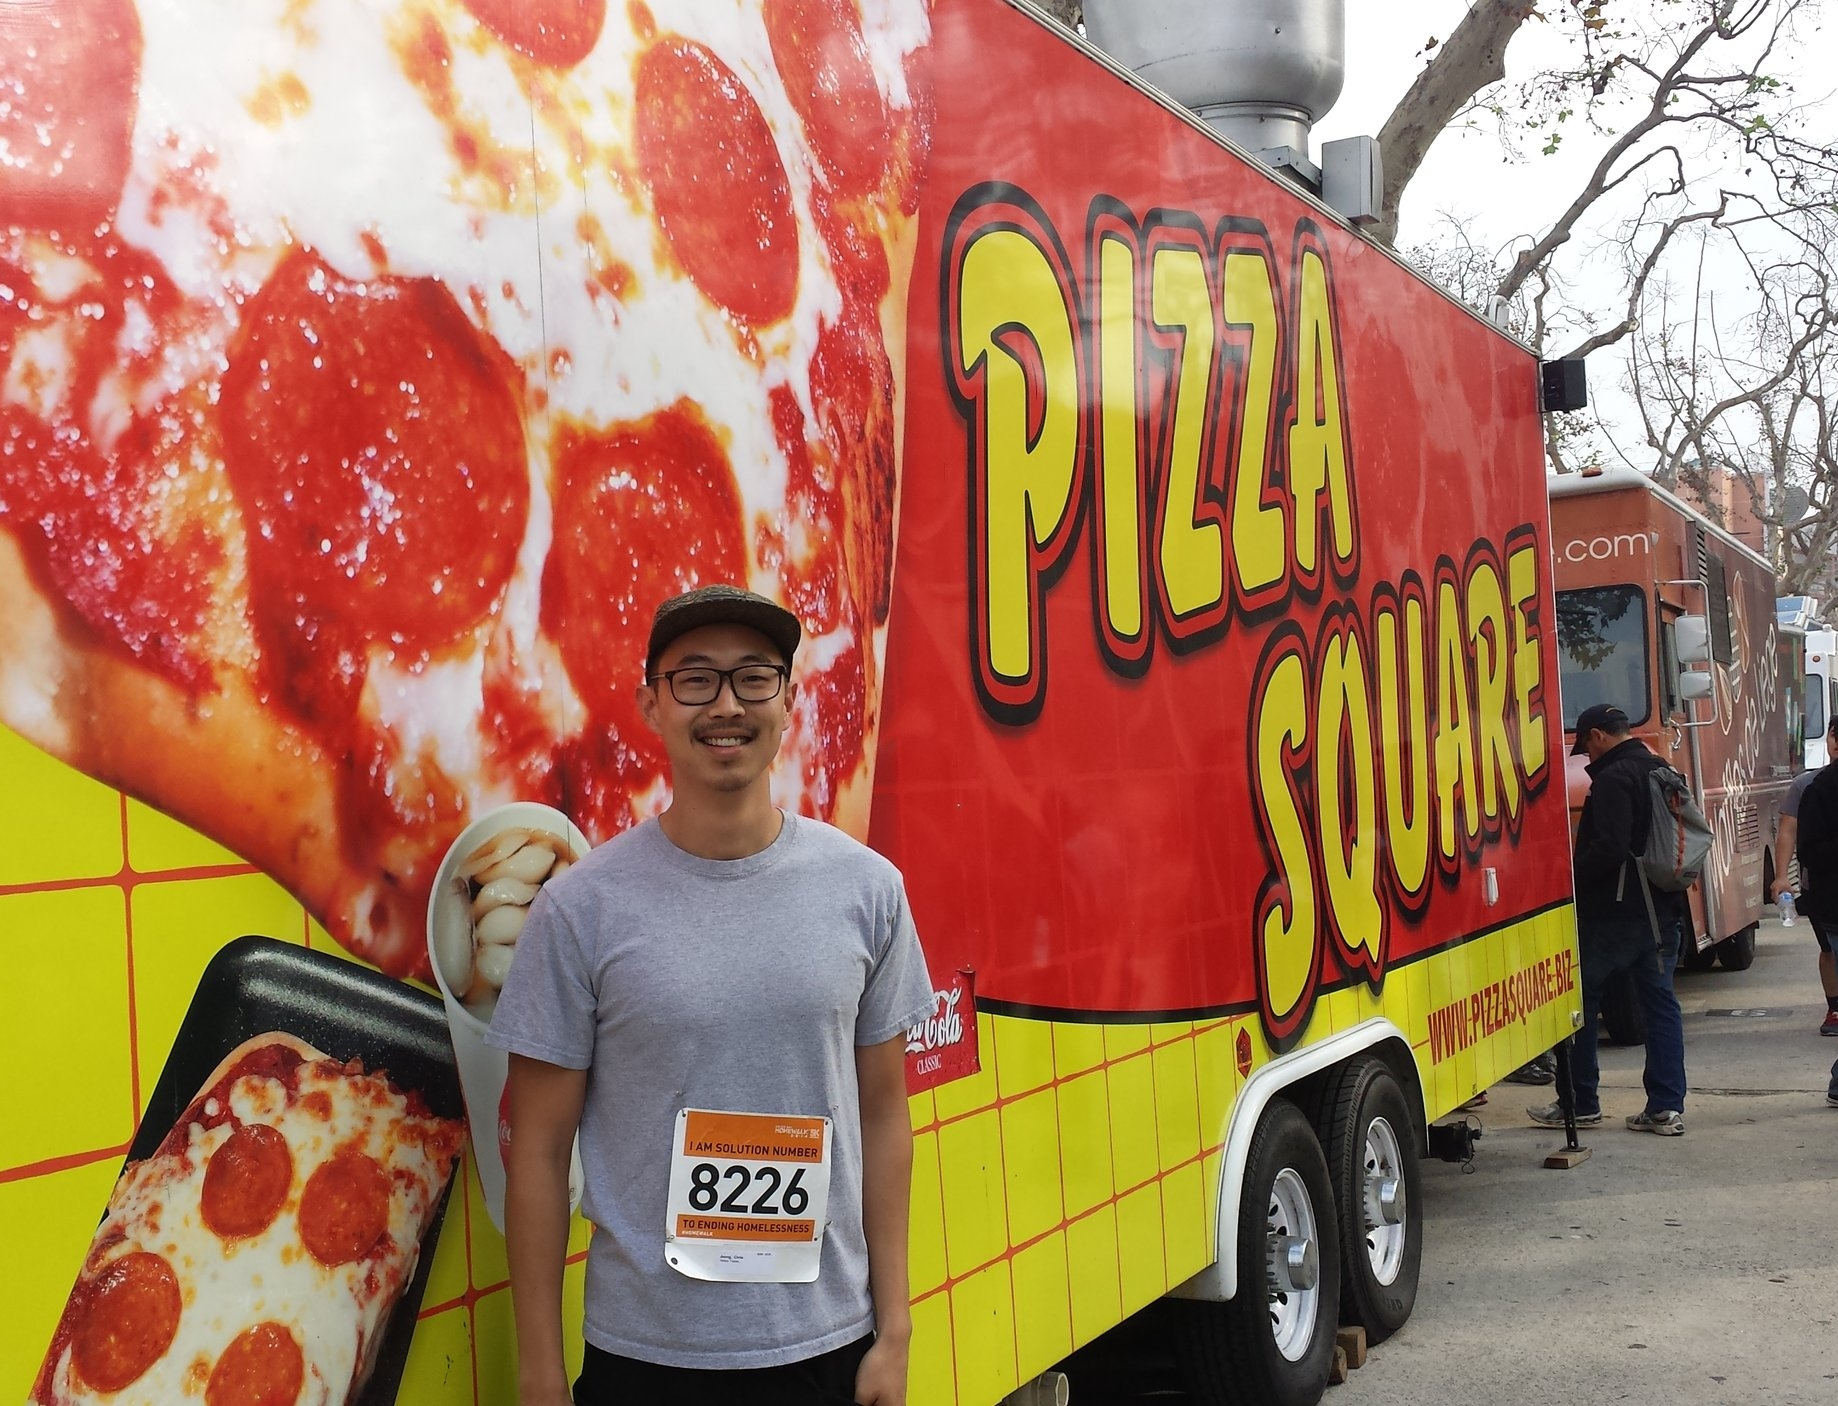 Eating pizza or running a 10k?